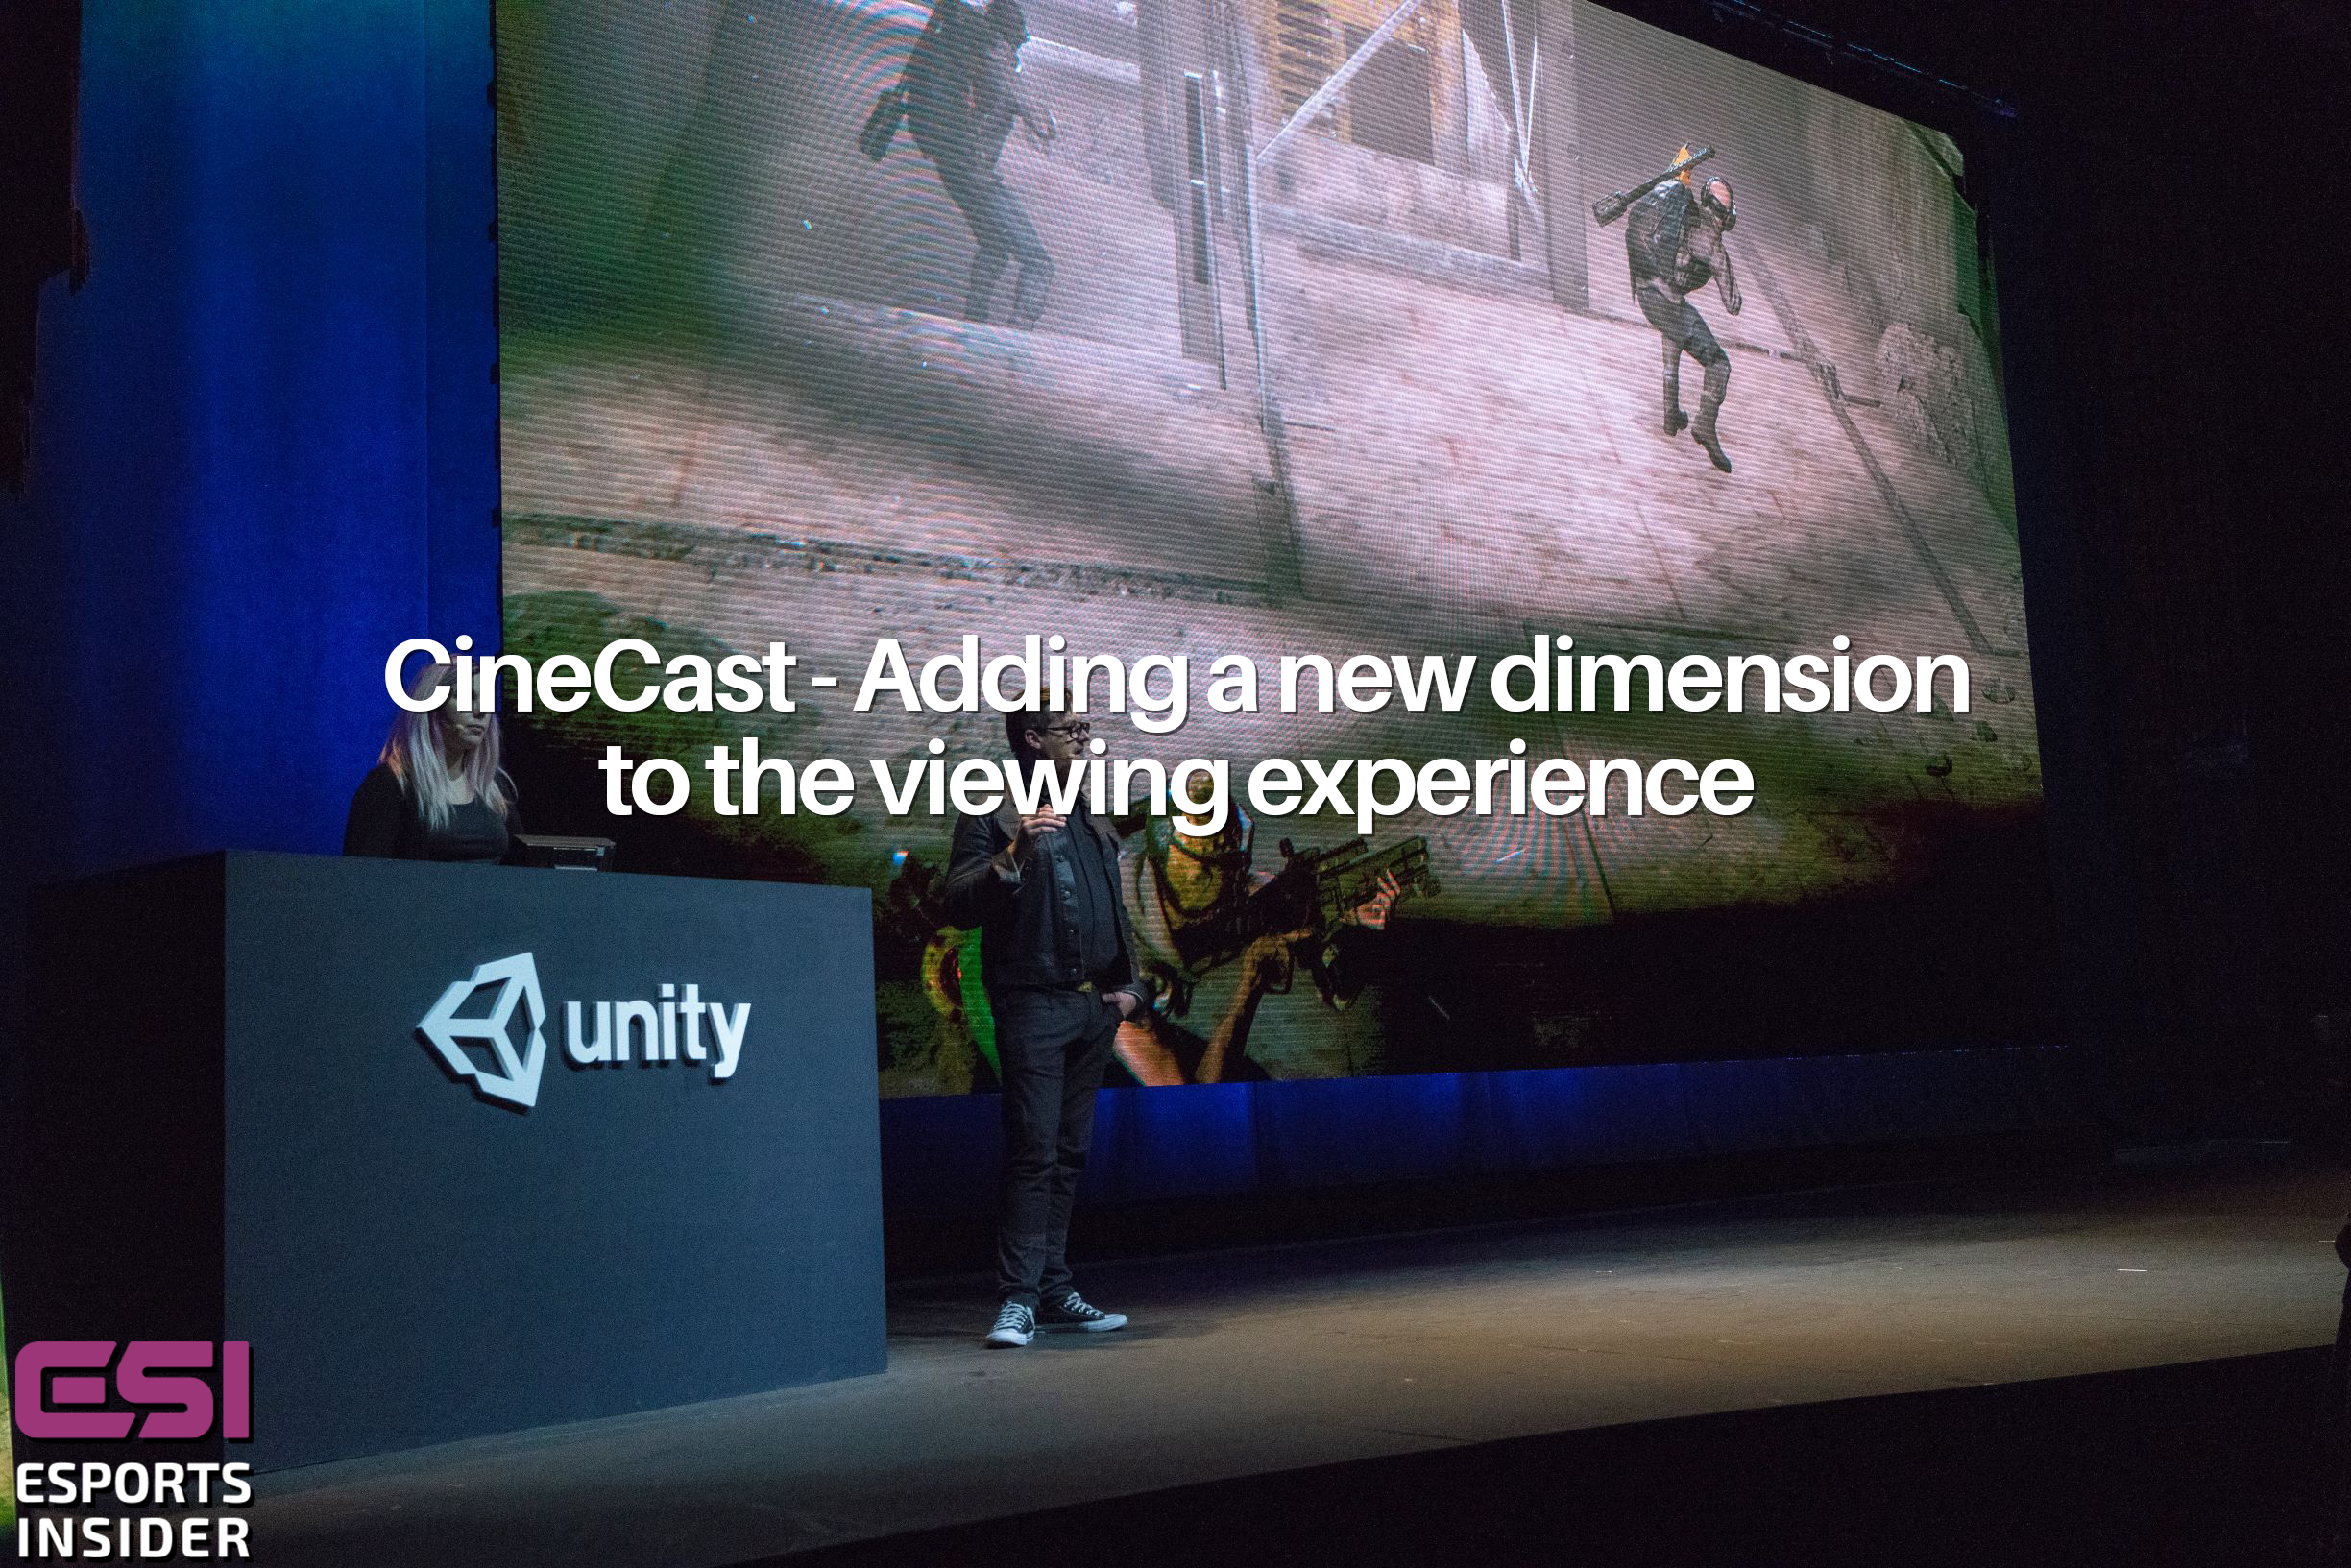 Adam Myhill – Unity Technologies – Adding a new dimension to